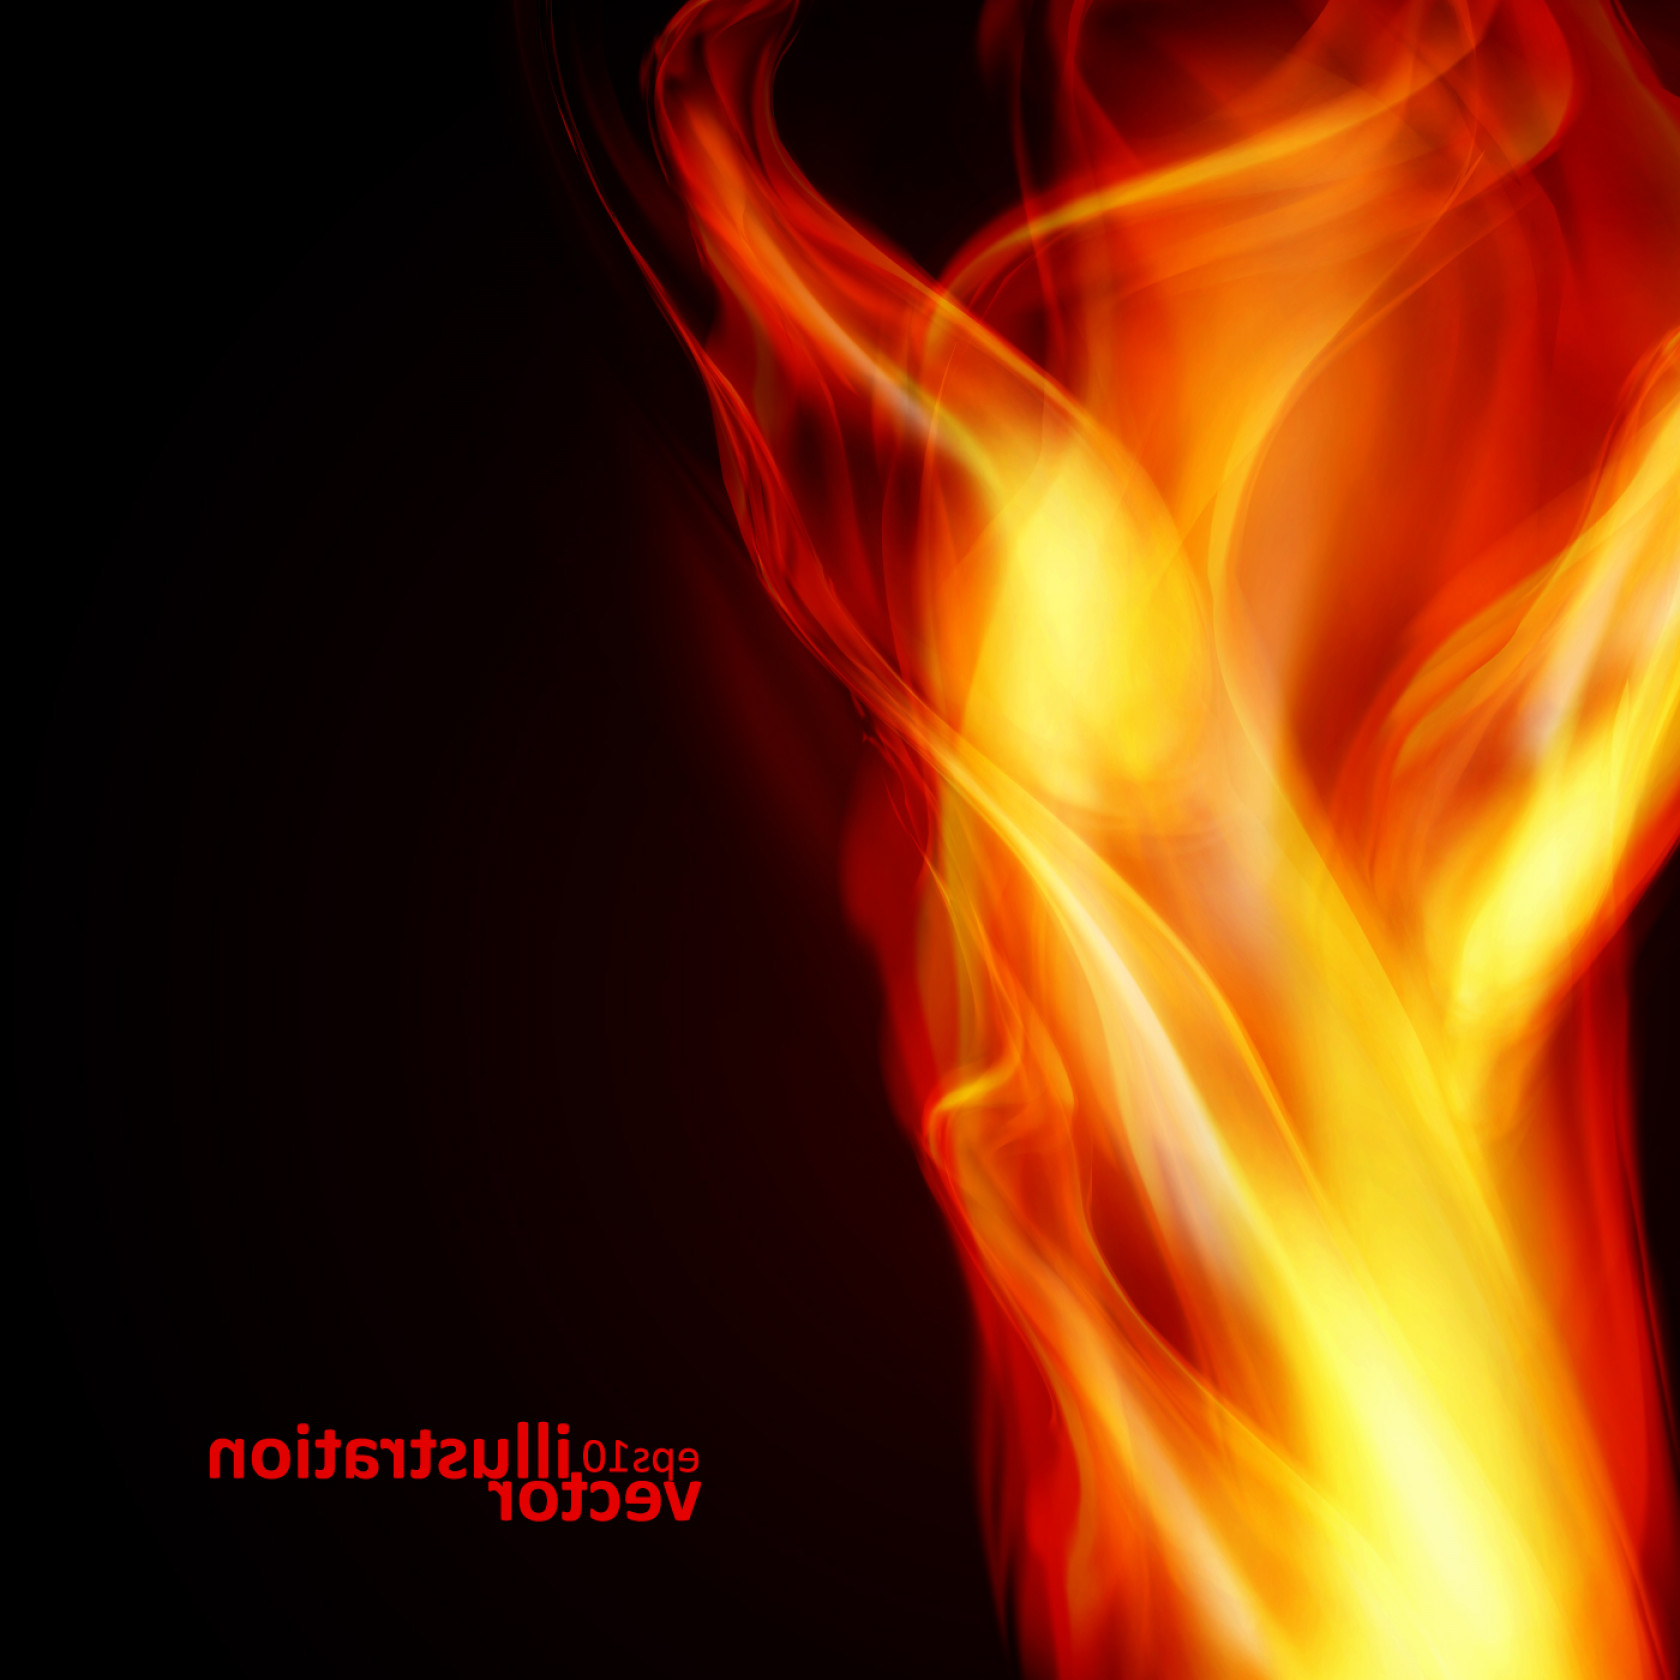 Free Vector Backgrounds Illustrator Free Download: Realistic Fiery Background Illustration Vector